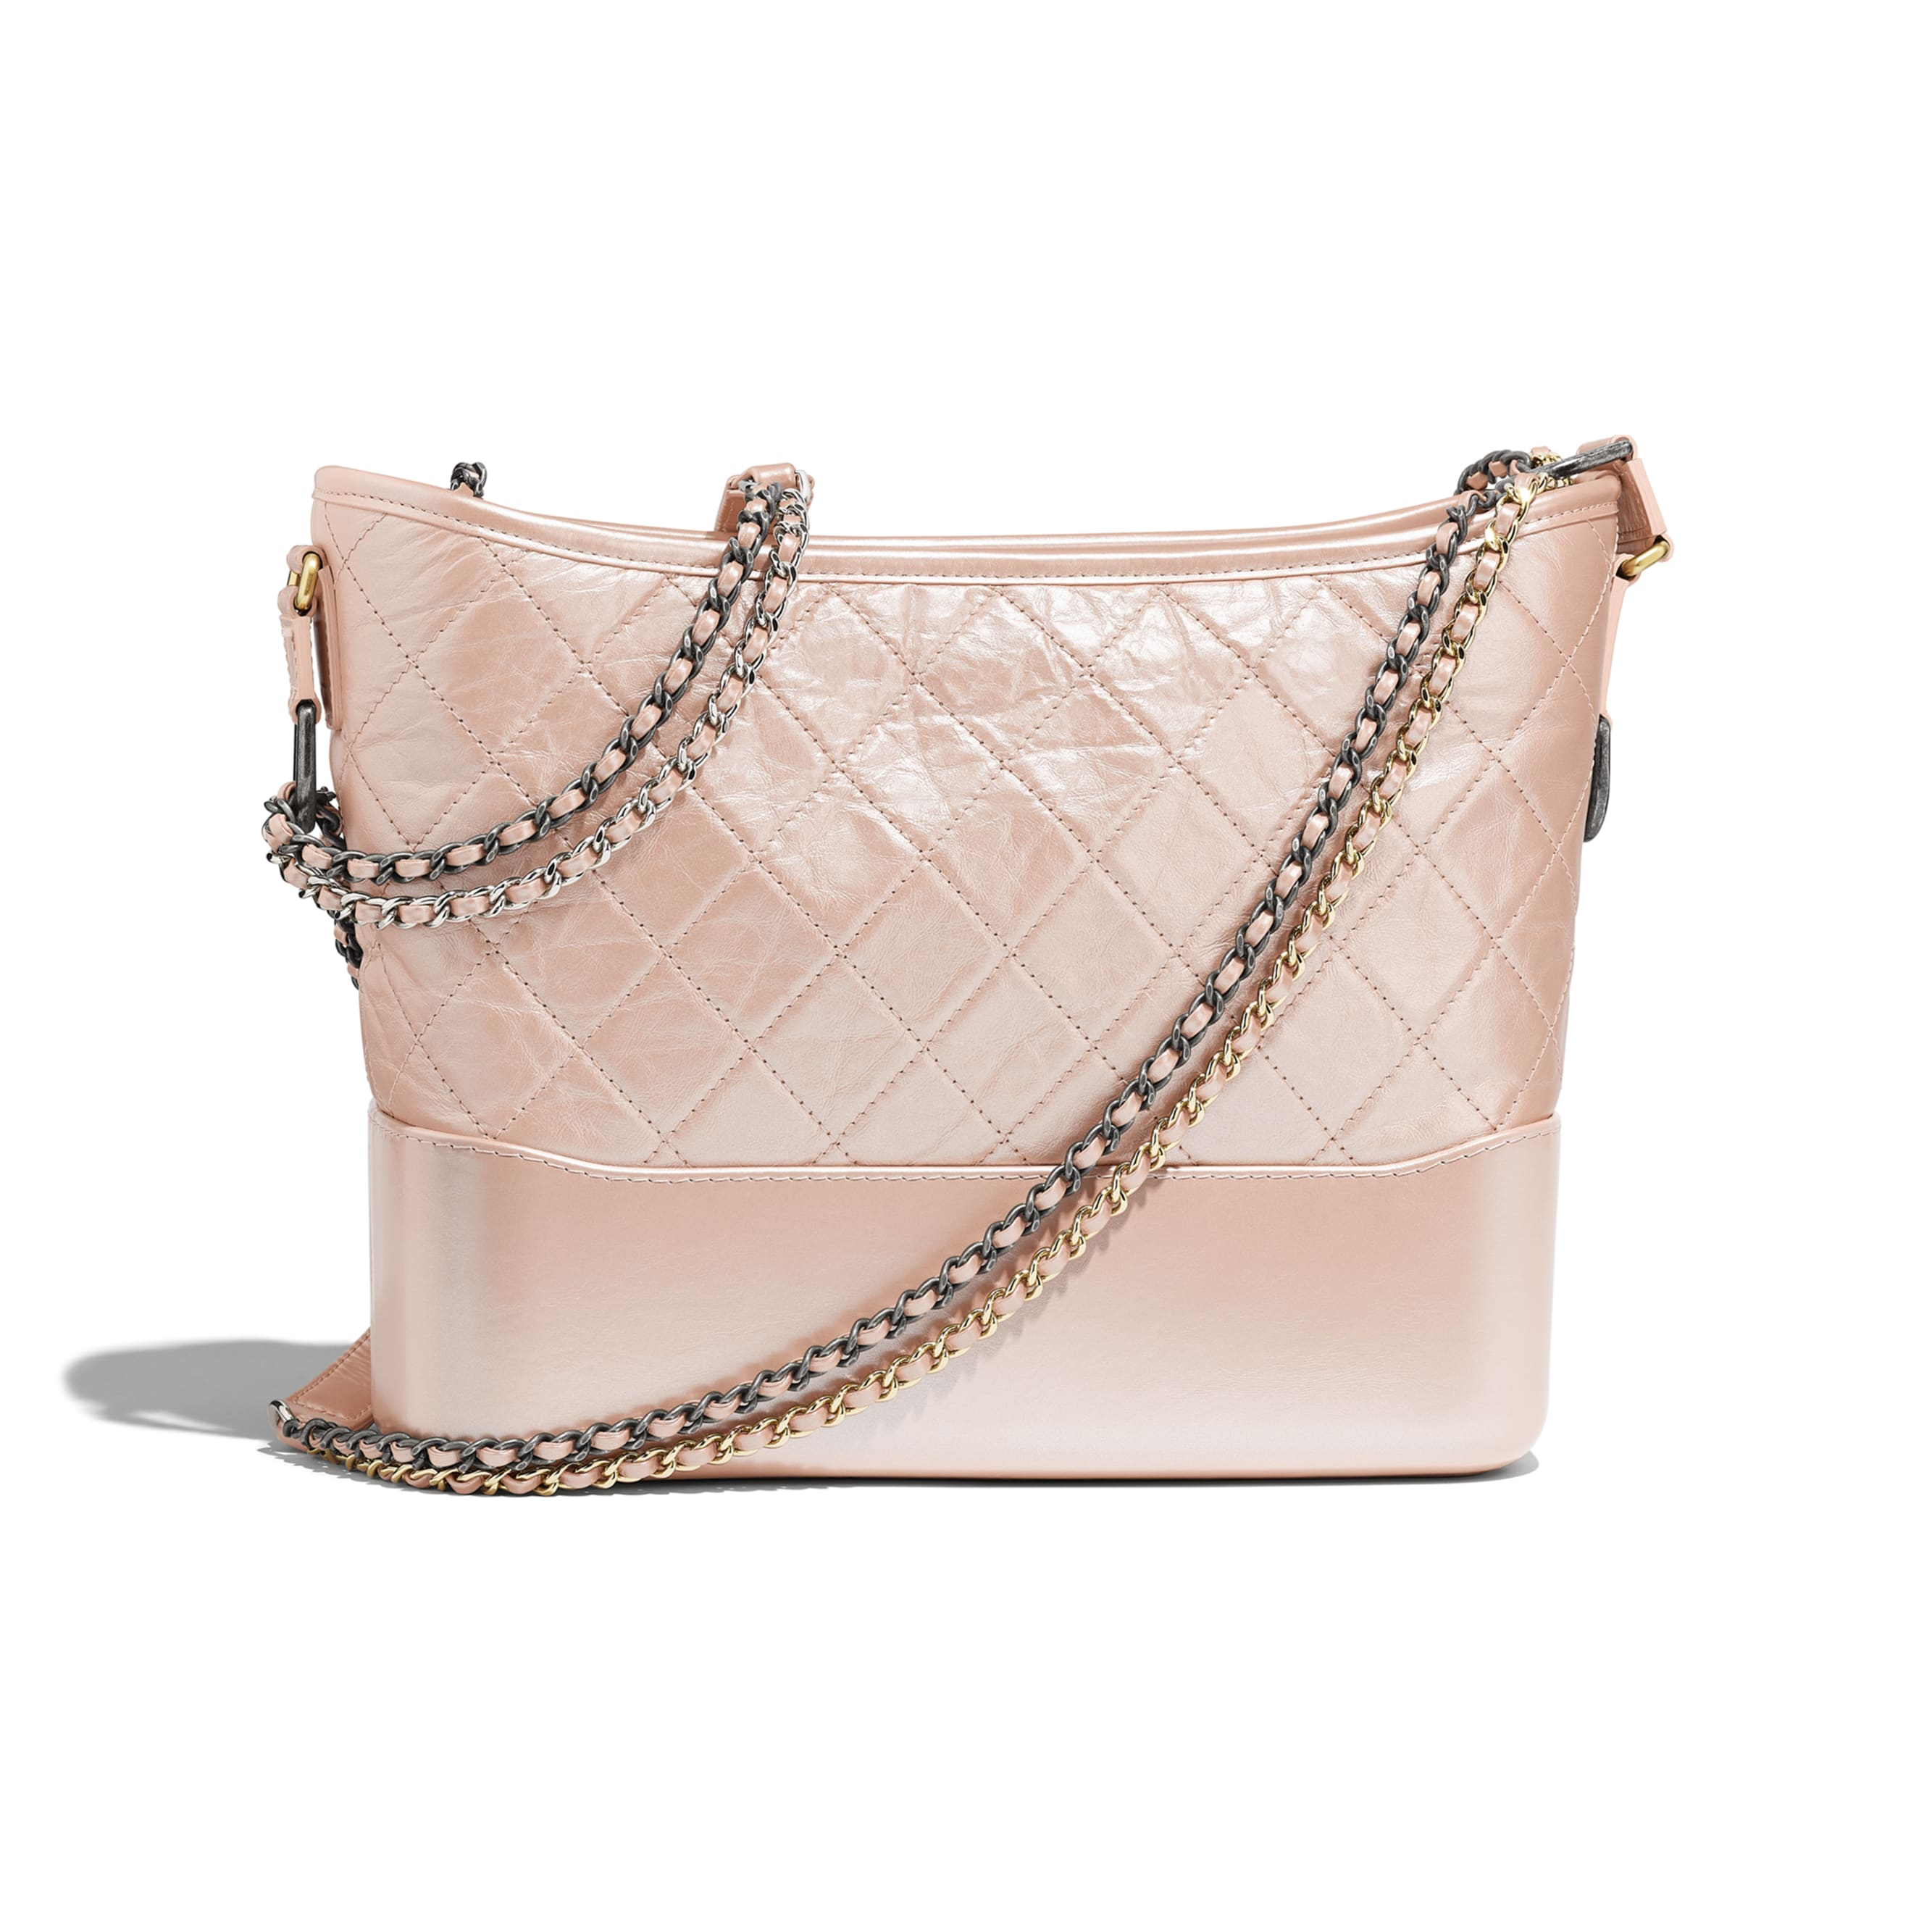 CHANEL'S GABRIELLE Hobo Bag - Light Pink - Iridescent Aged Calfskin, Gold-Tone & Silver-Tone Metal - Alternative view - see standard sized version